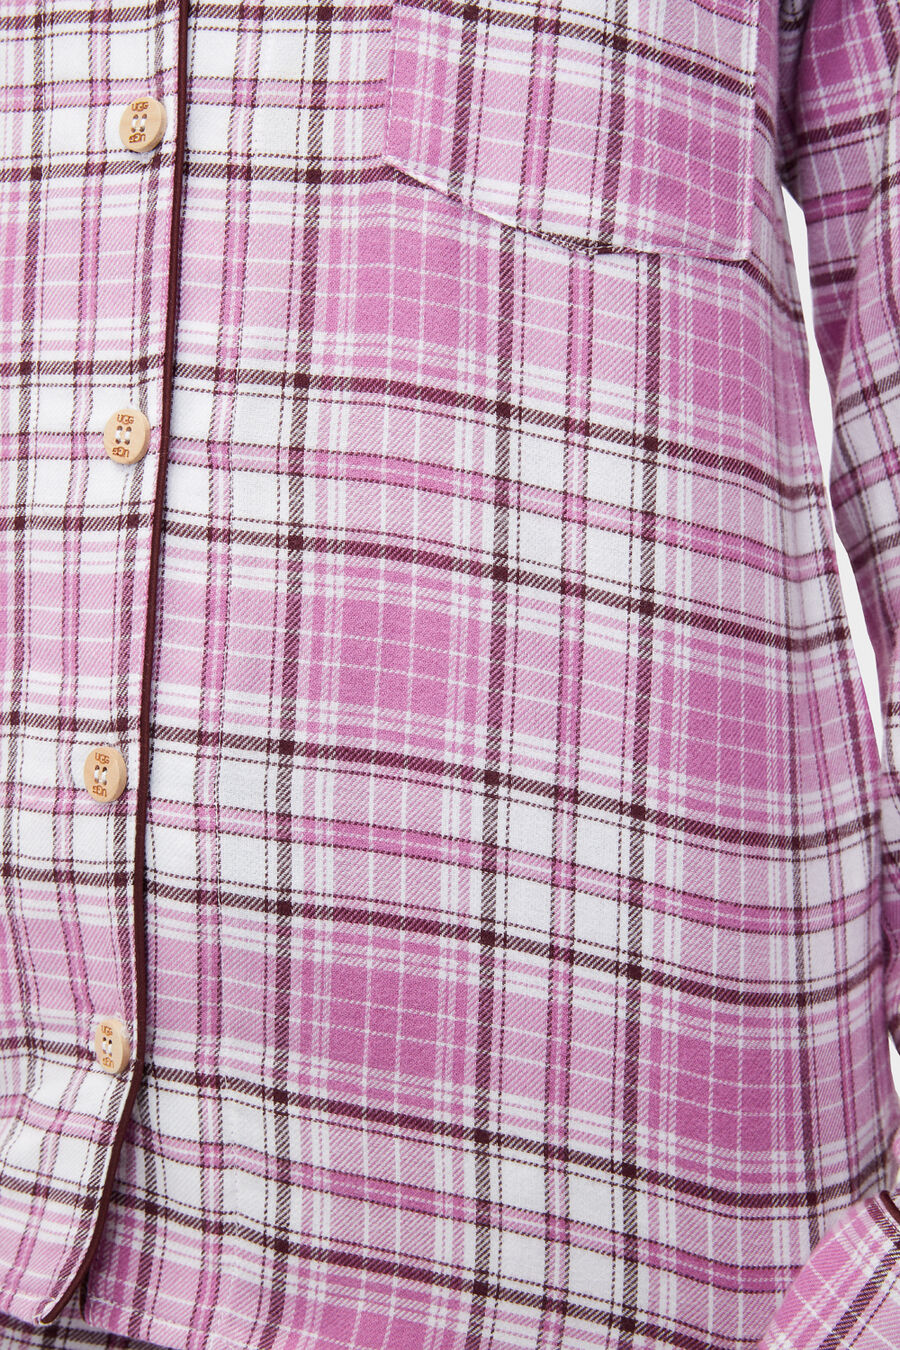 Milo Flannel PJ Set - Image 5 of 6